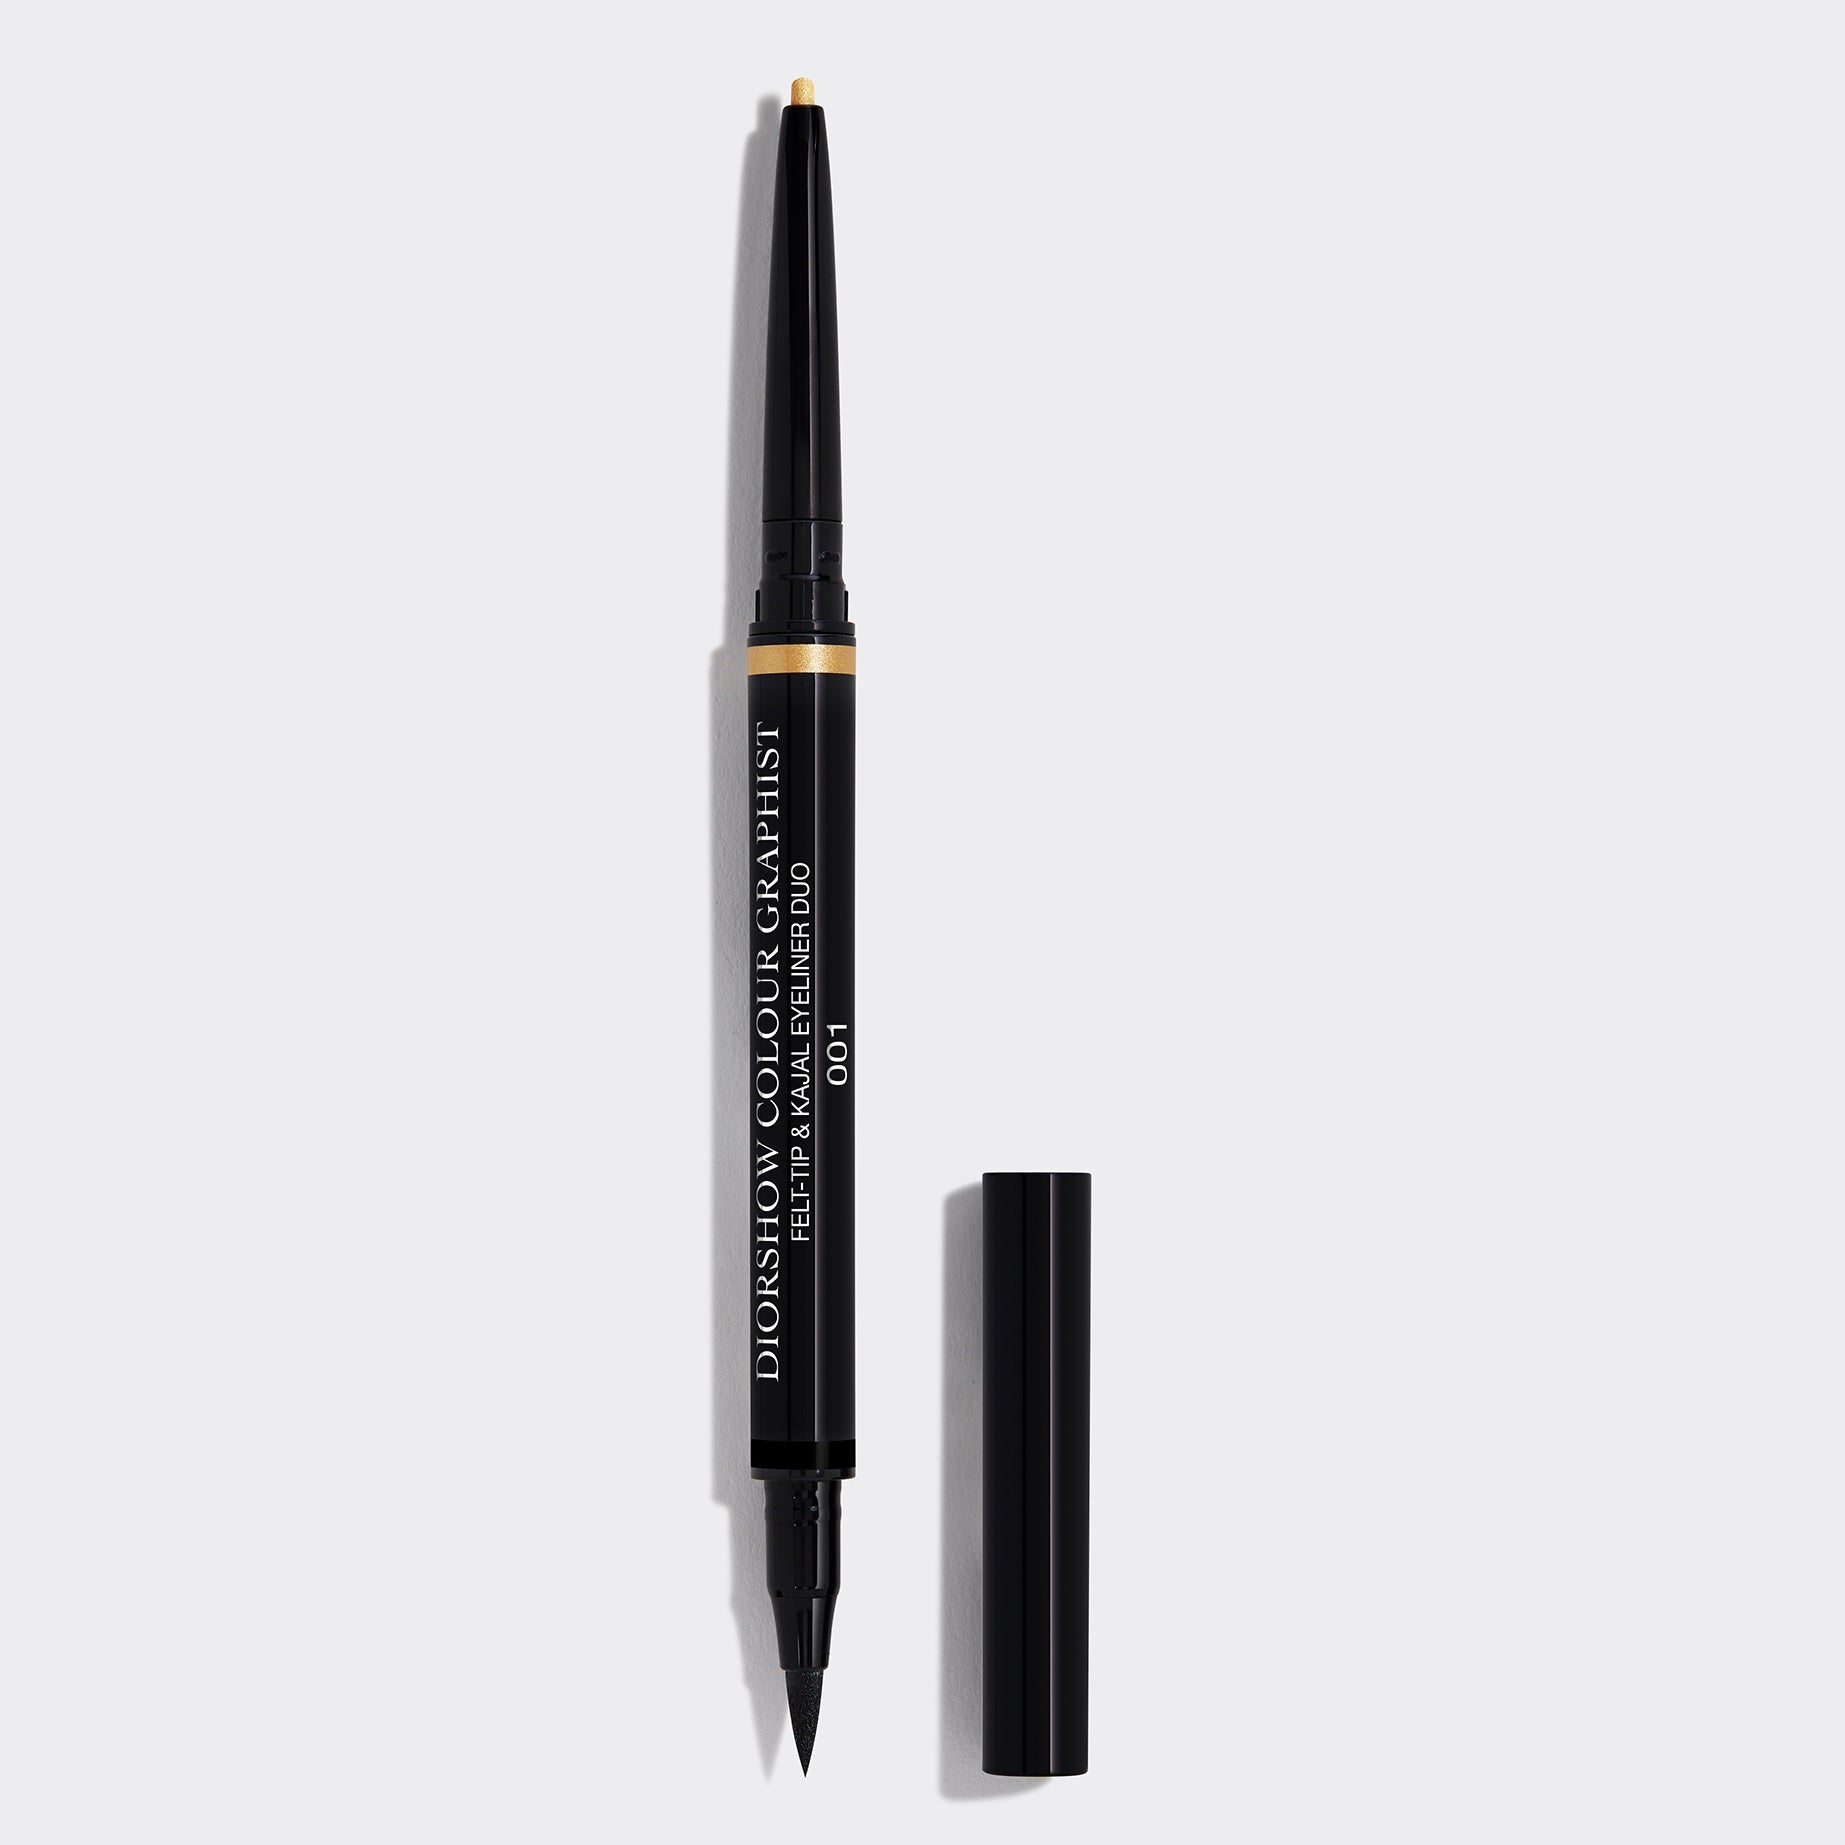 Diorshow Colour Graphist - Summer Dune Limited Edition | 2-in1 water-resistant eyeliner